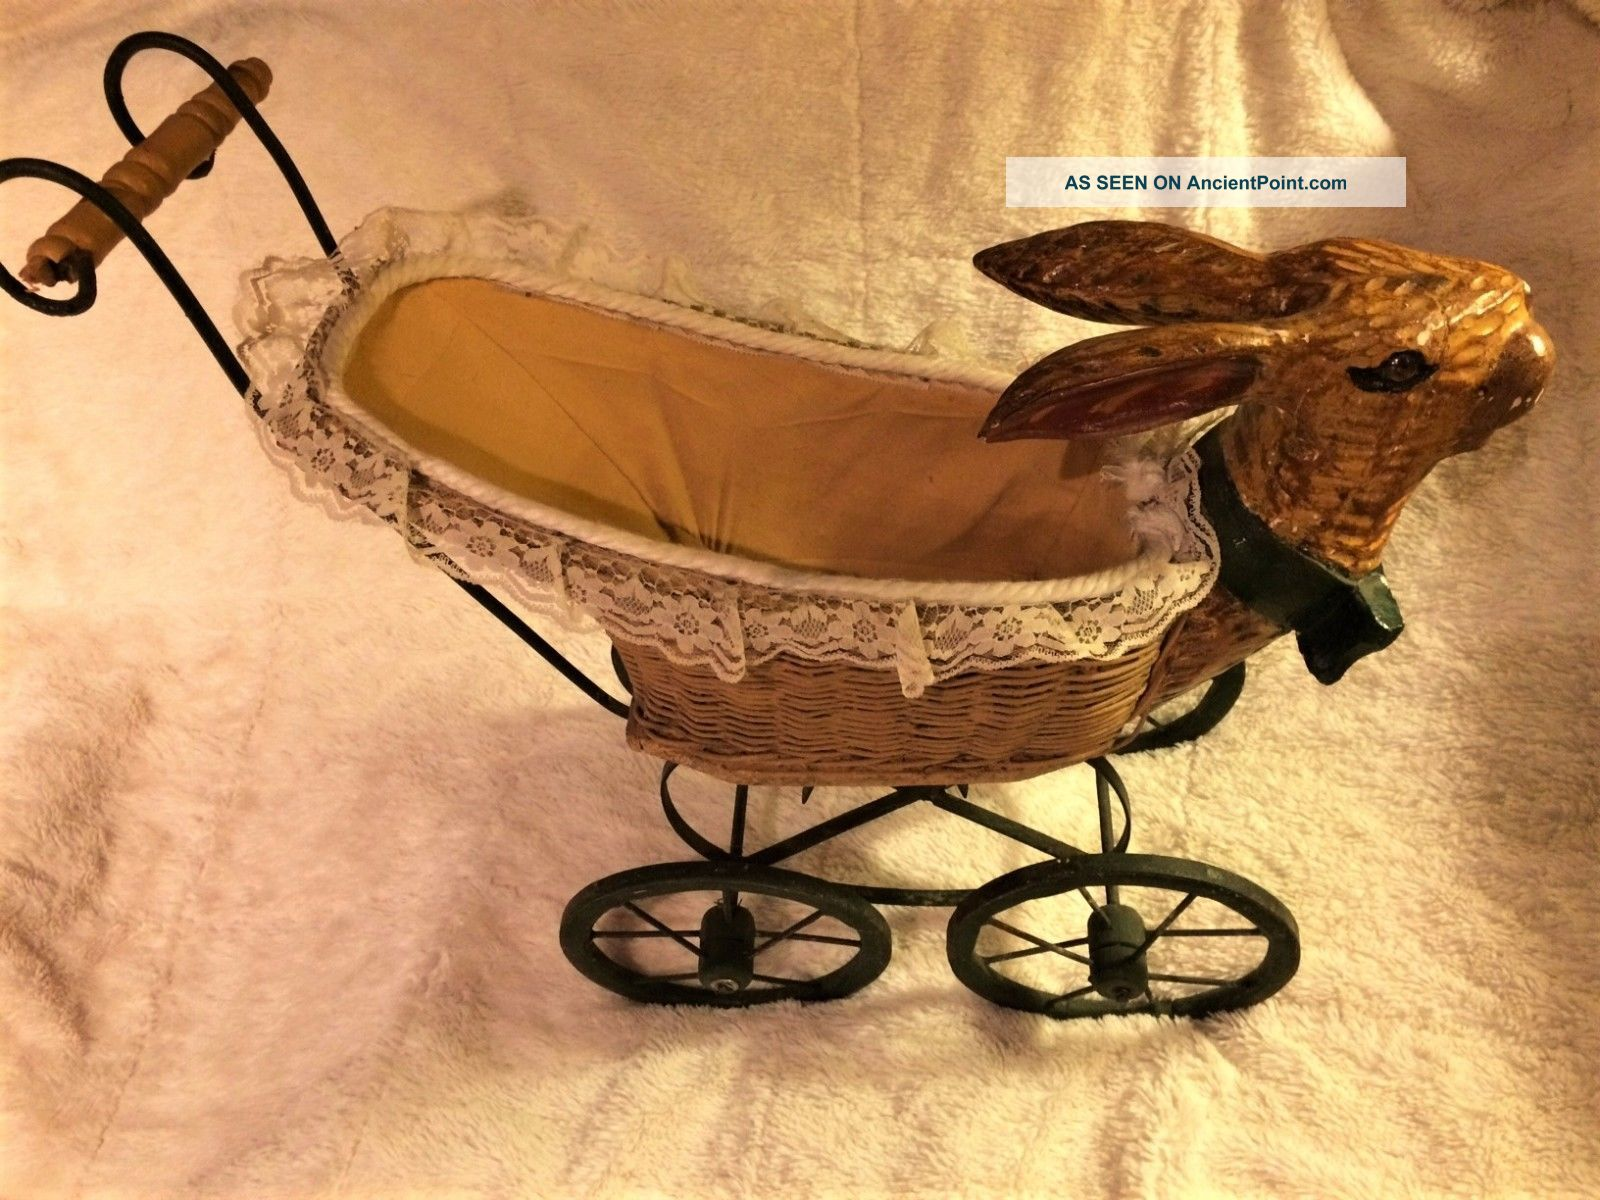 Antique Iron Bunny Rabbit Head Wicker Babydoll Stroller Buggy Baby Carriages & Buggies photo